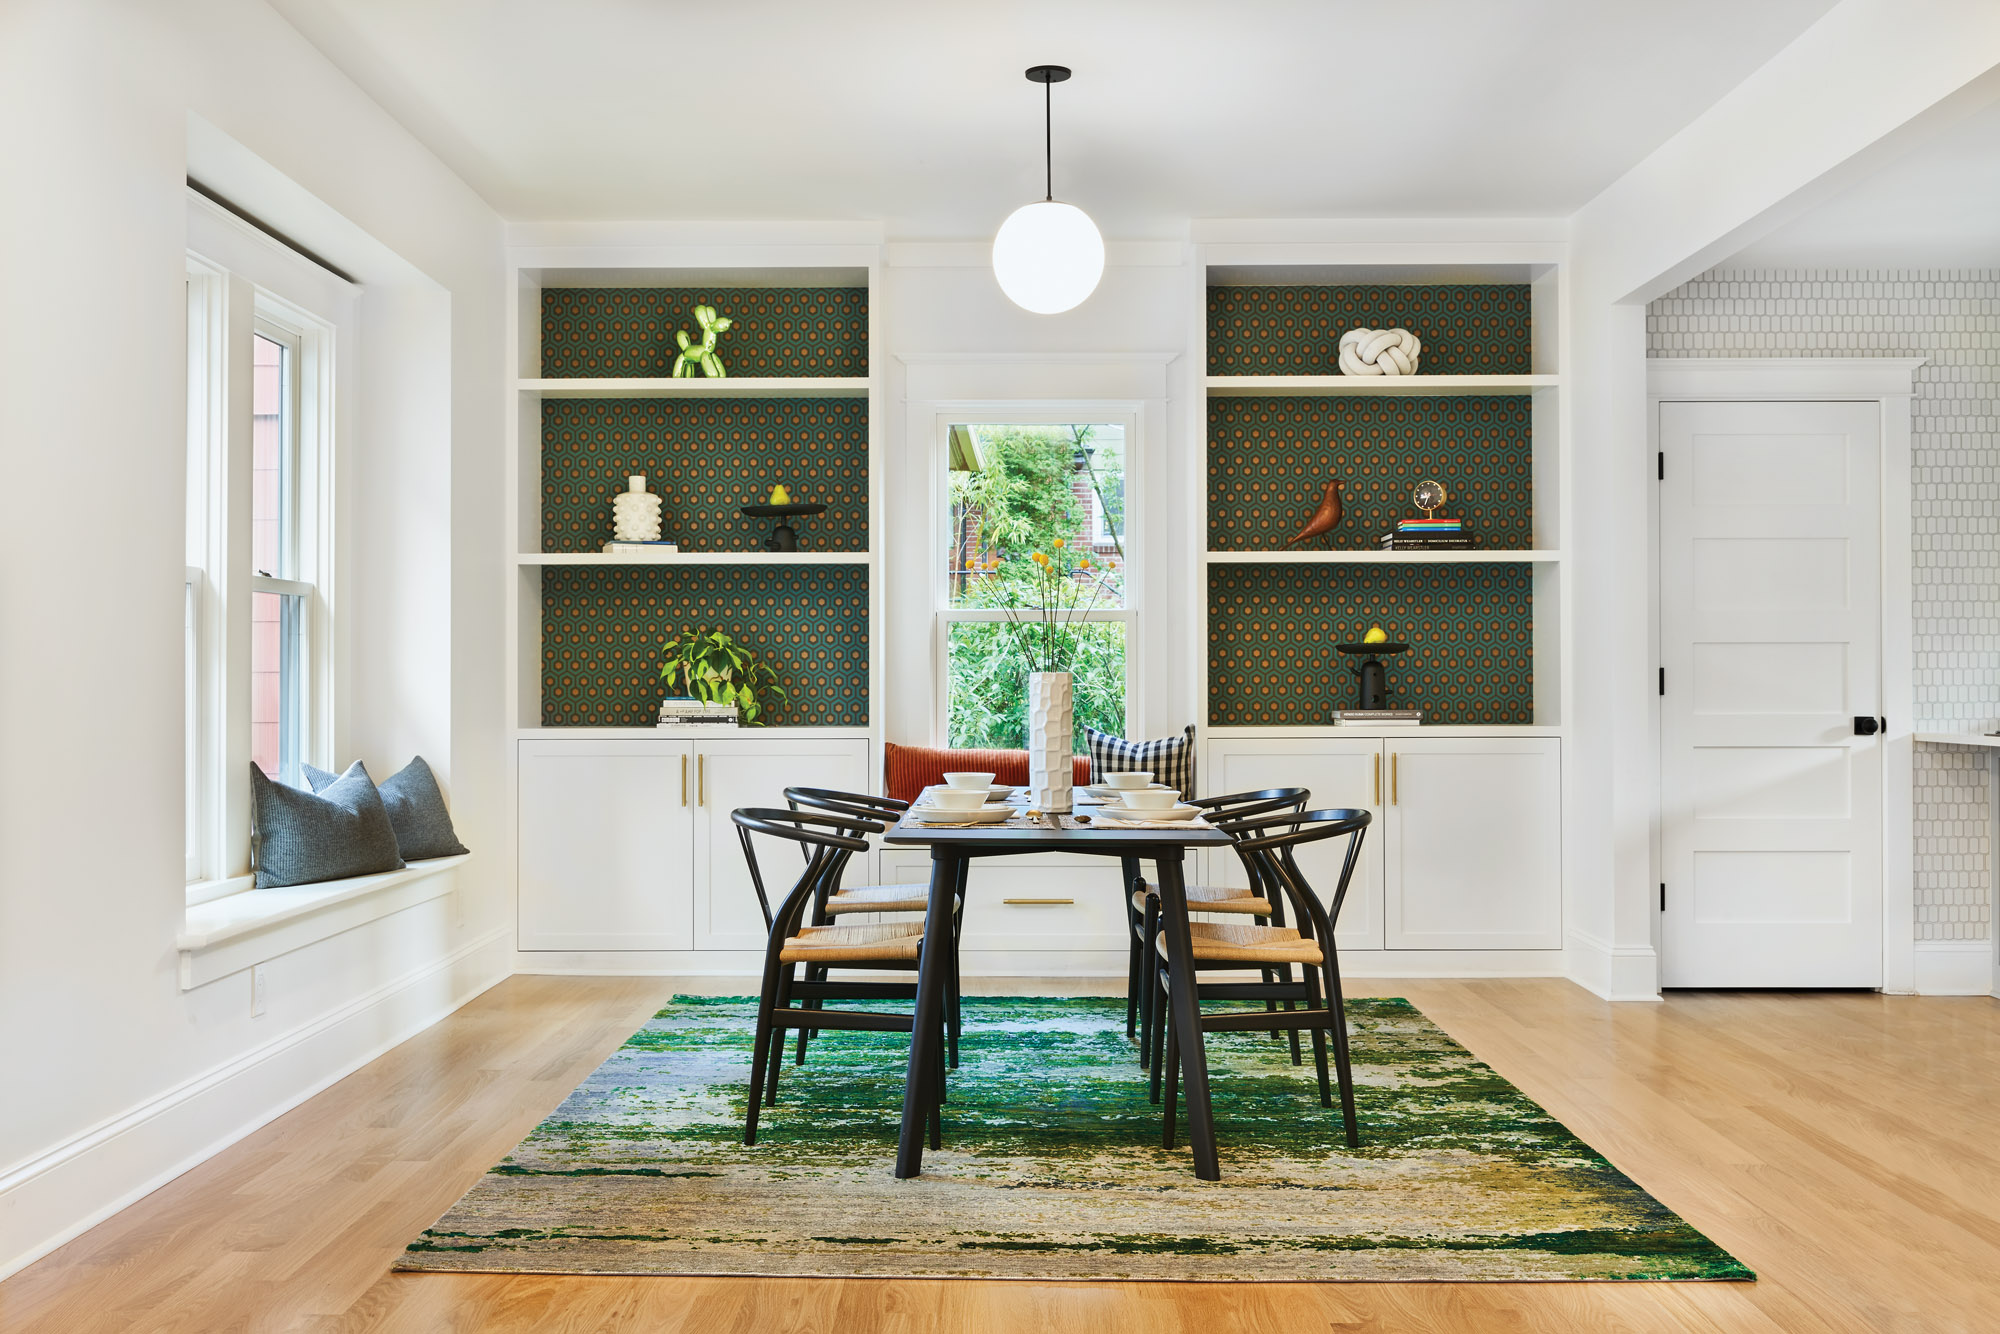 The open dining room is intimate due to paper-lined bookshelves, a window seat, and a handmade rug.